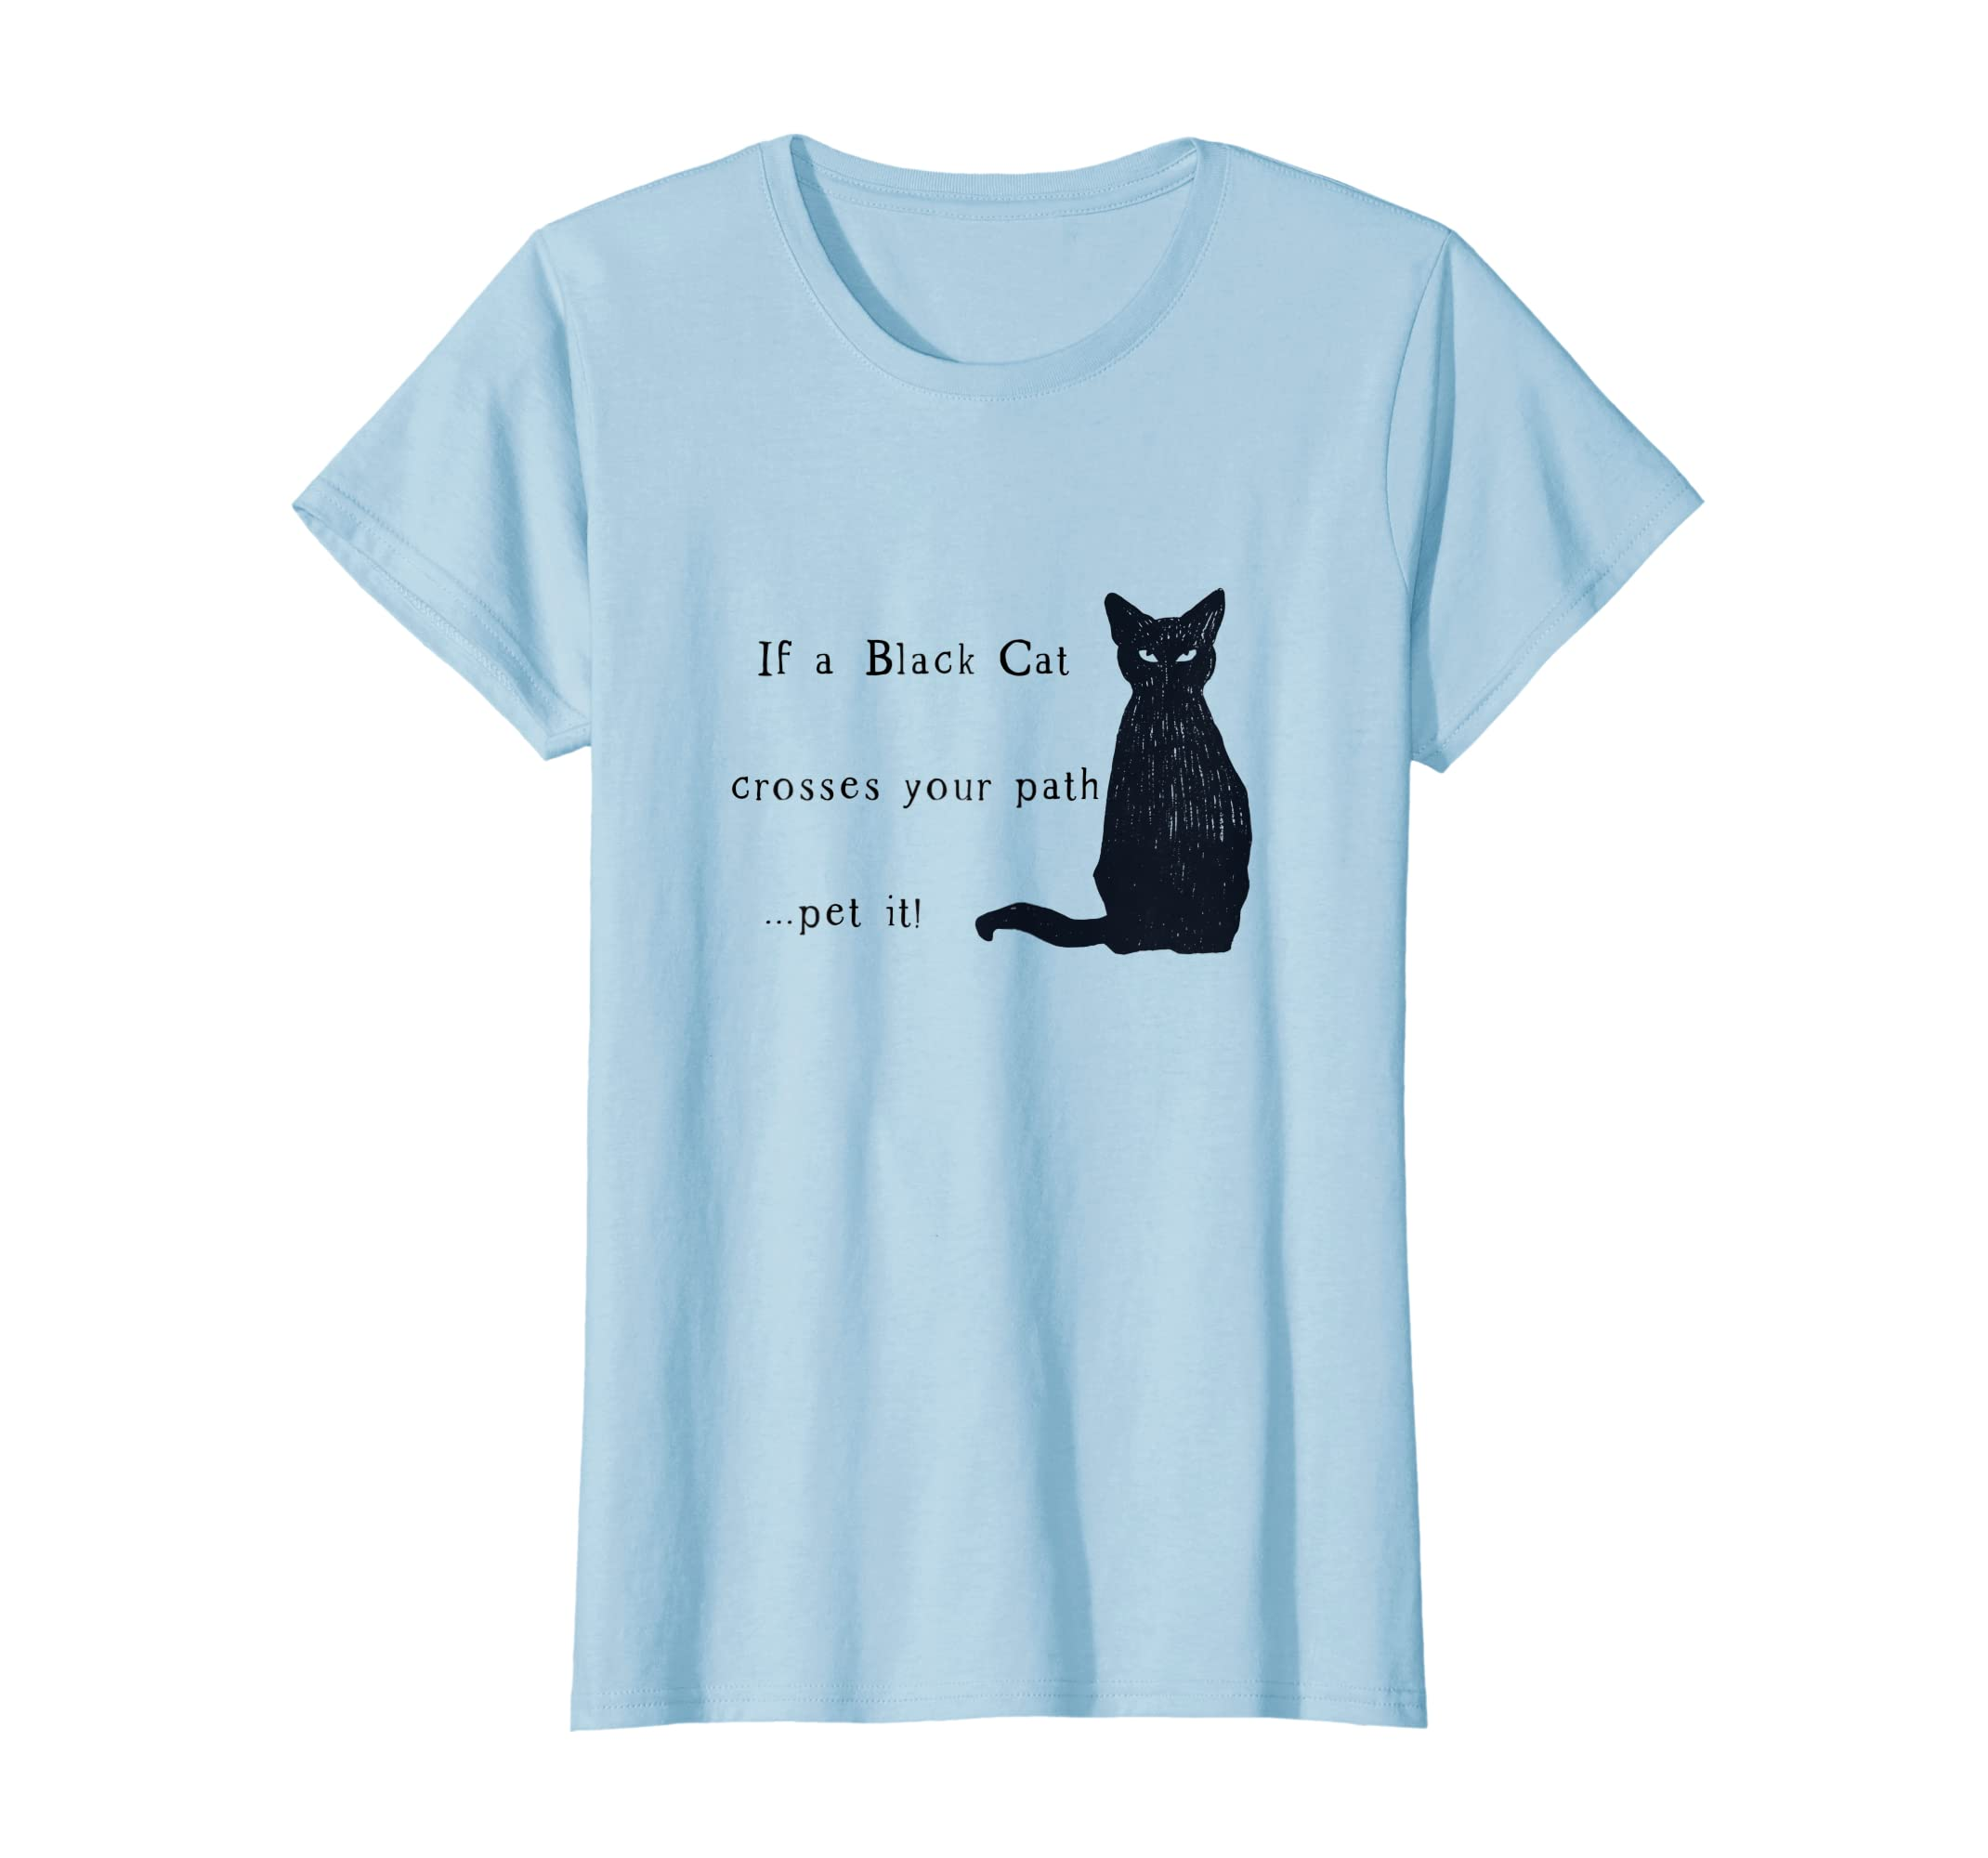 00c174a3 Amazon.com: If A Black Cat Crosses Your Path...Pet It - Funny Cat Shirt:  Clothing